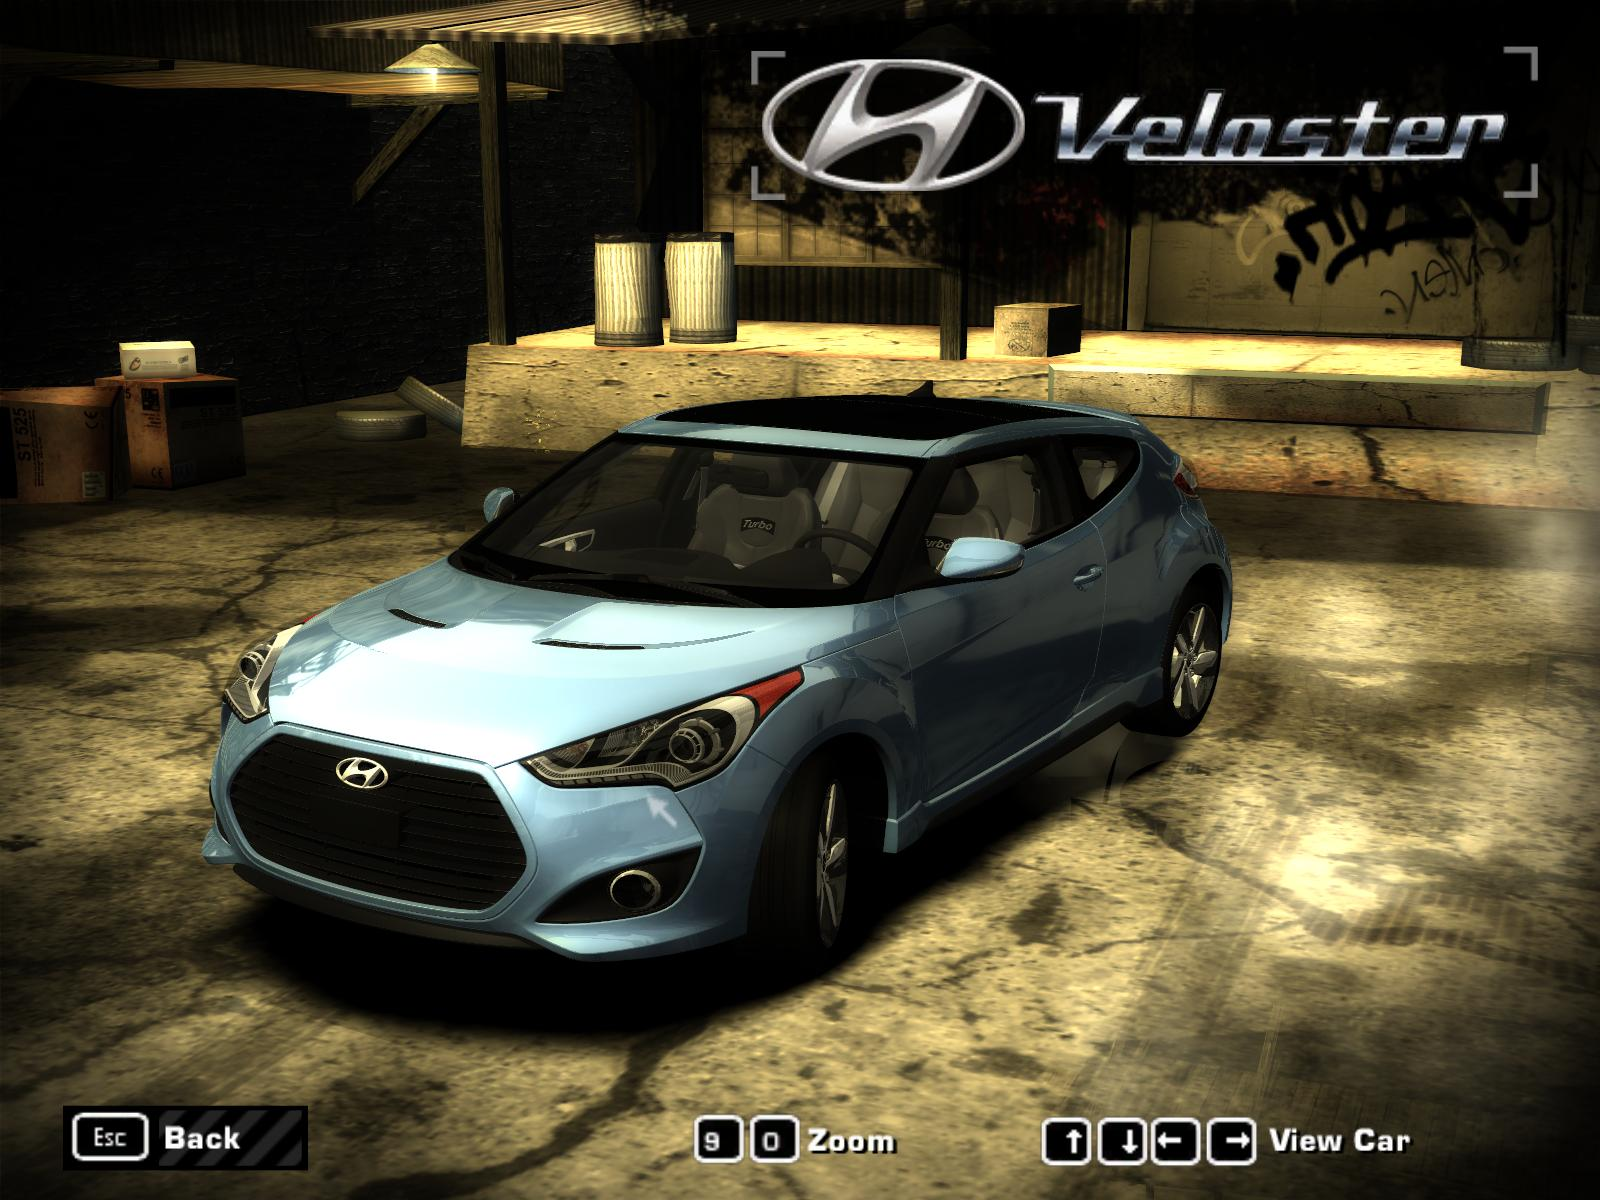 Sonata Wallpaper Car Need For Speed Most Wanted 2013 Hyundai Veloster Turbo